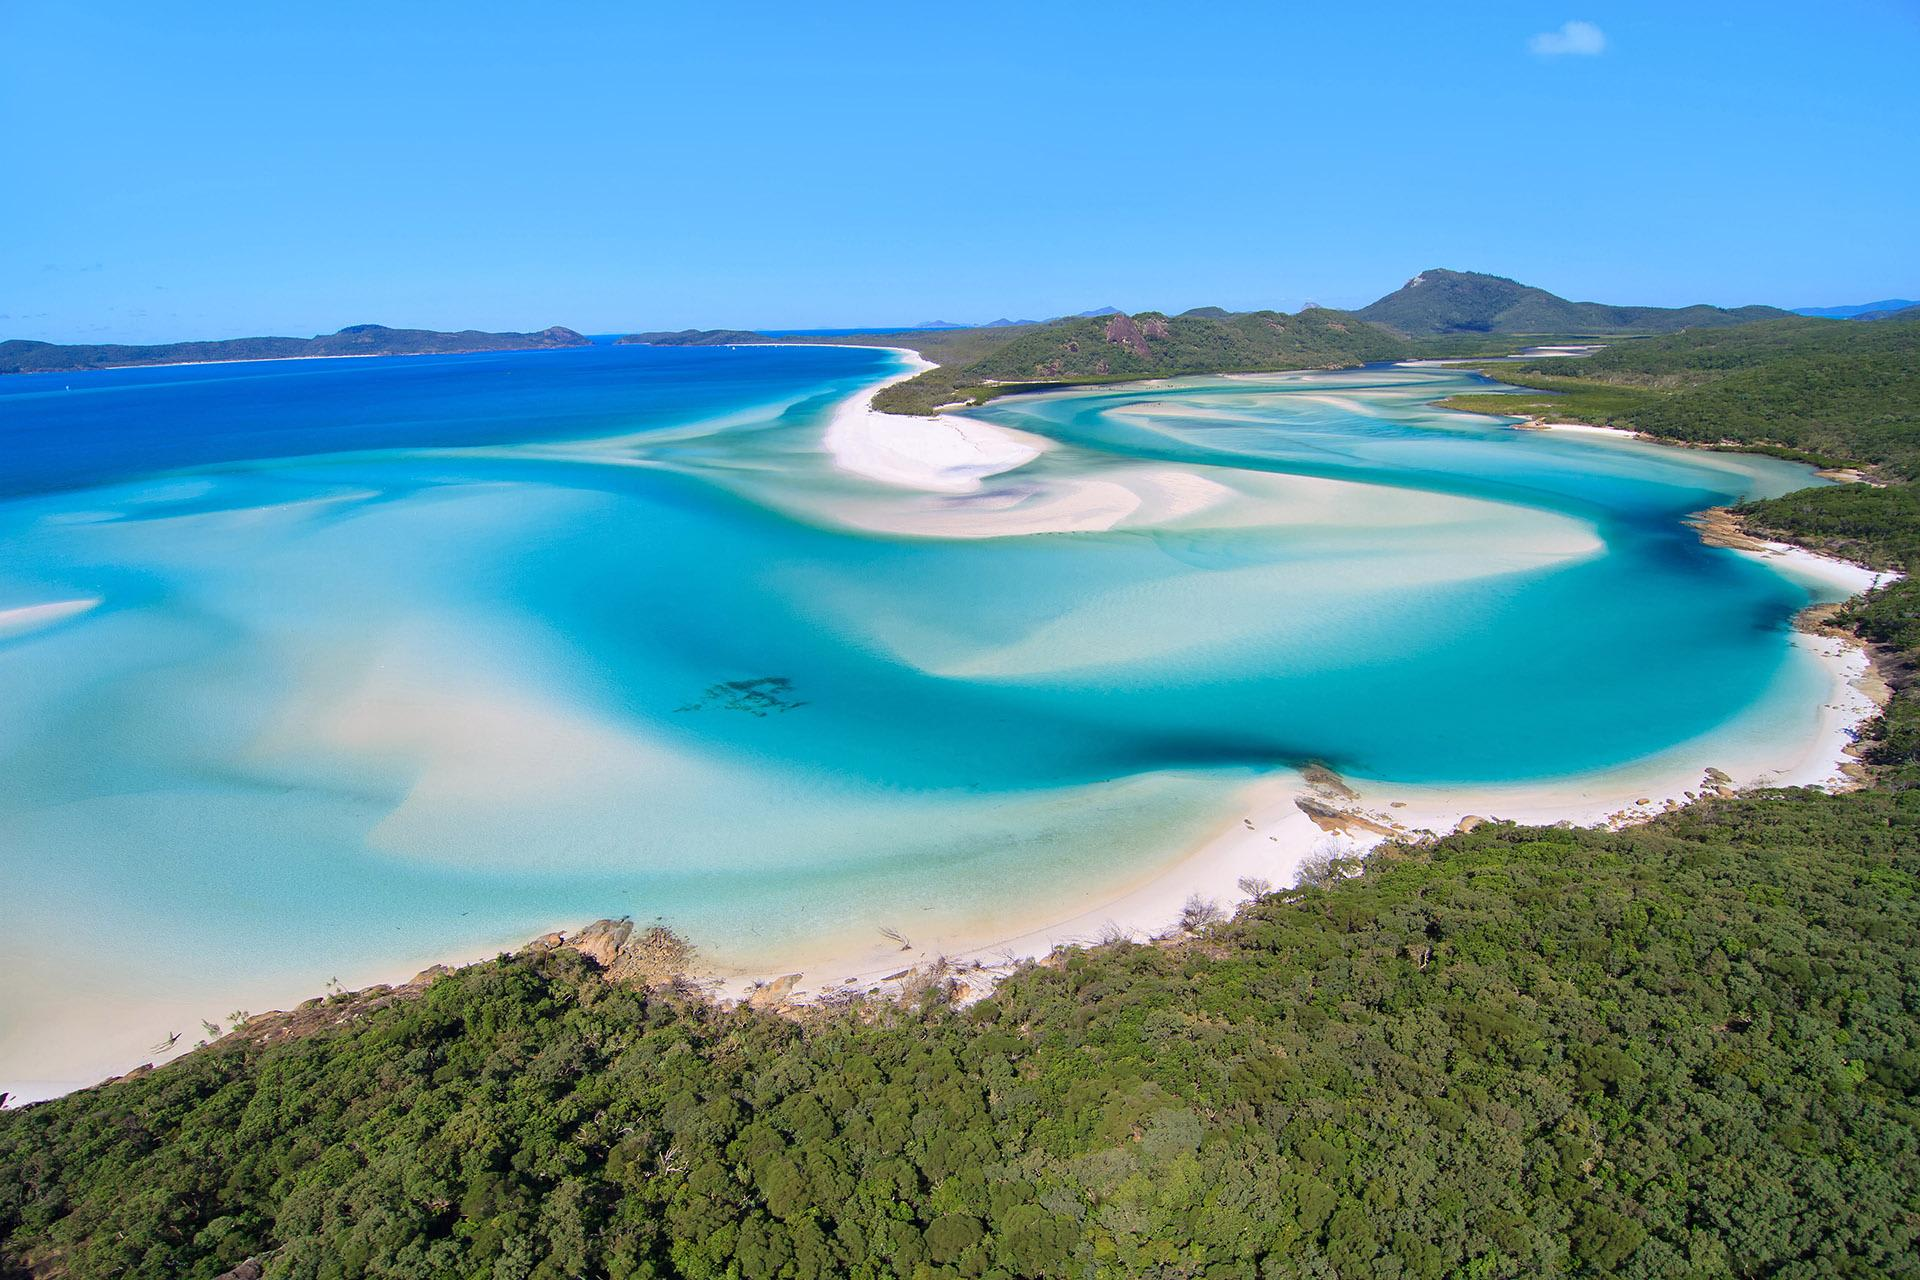 Overnight Sleep, Sail and Snorkel in The Whitsundays